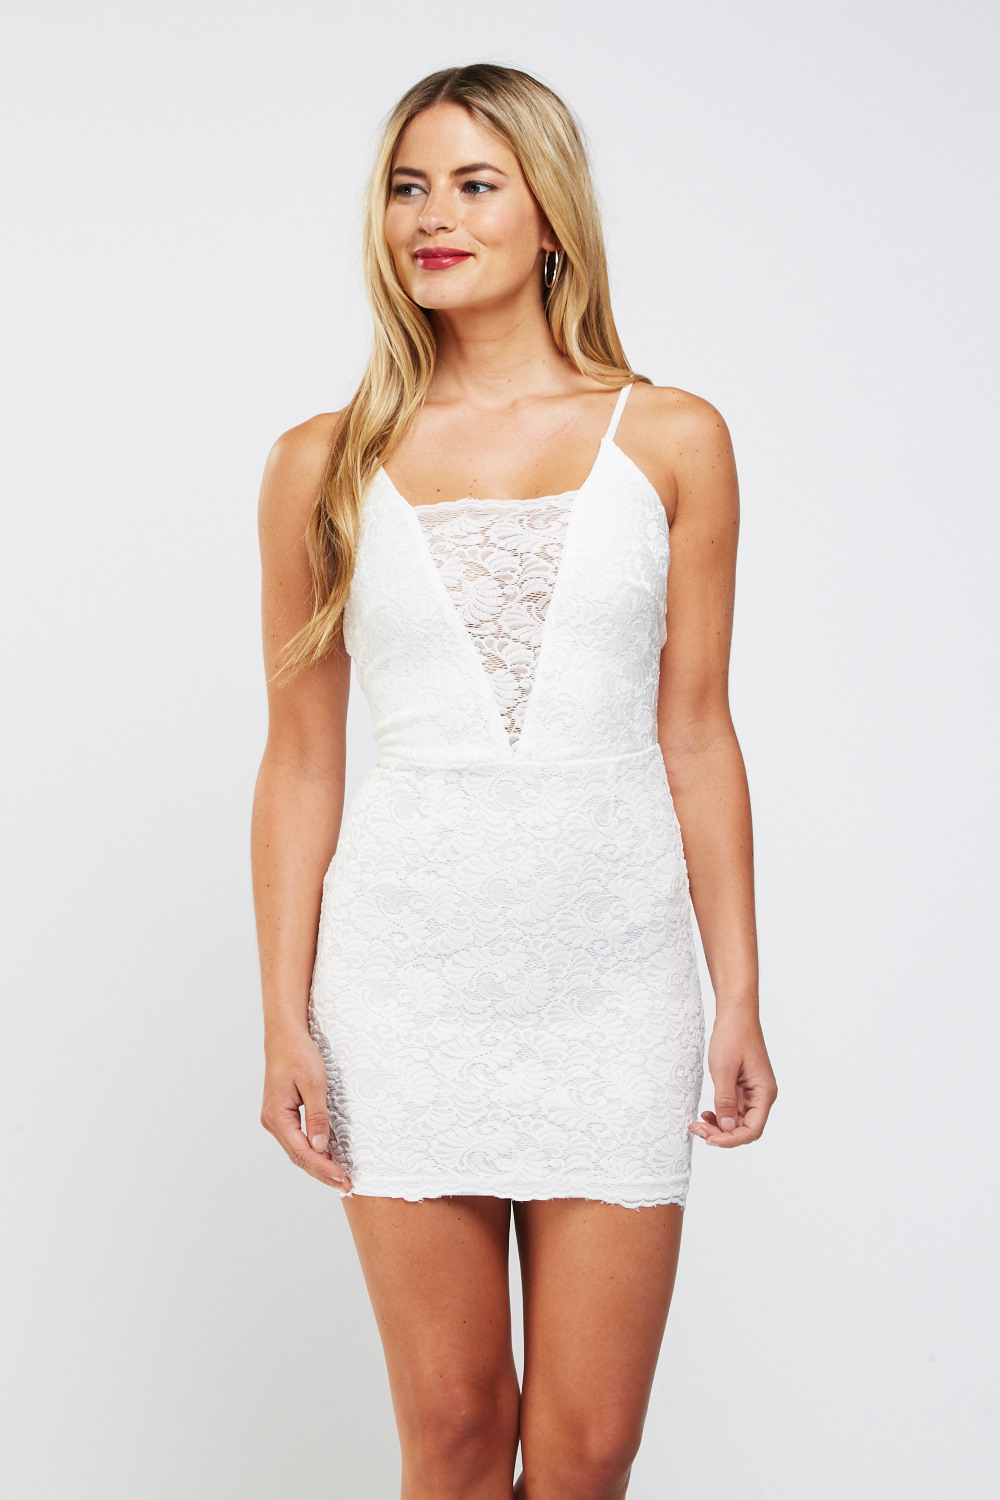 53368c6a350 Laser Cut Lace Overlay Mini Bodycon Dress - White - Just £5